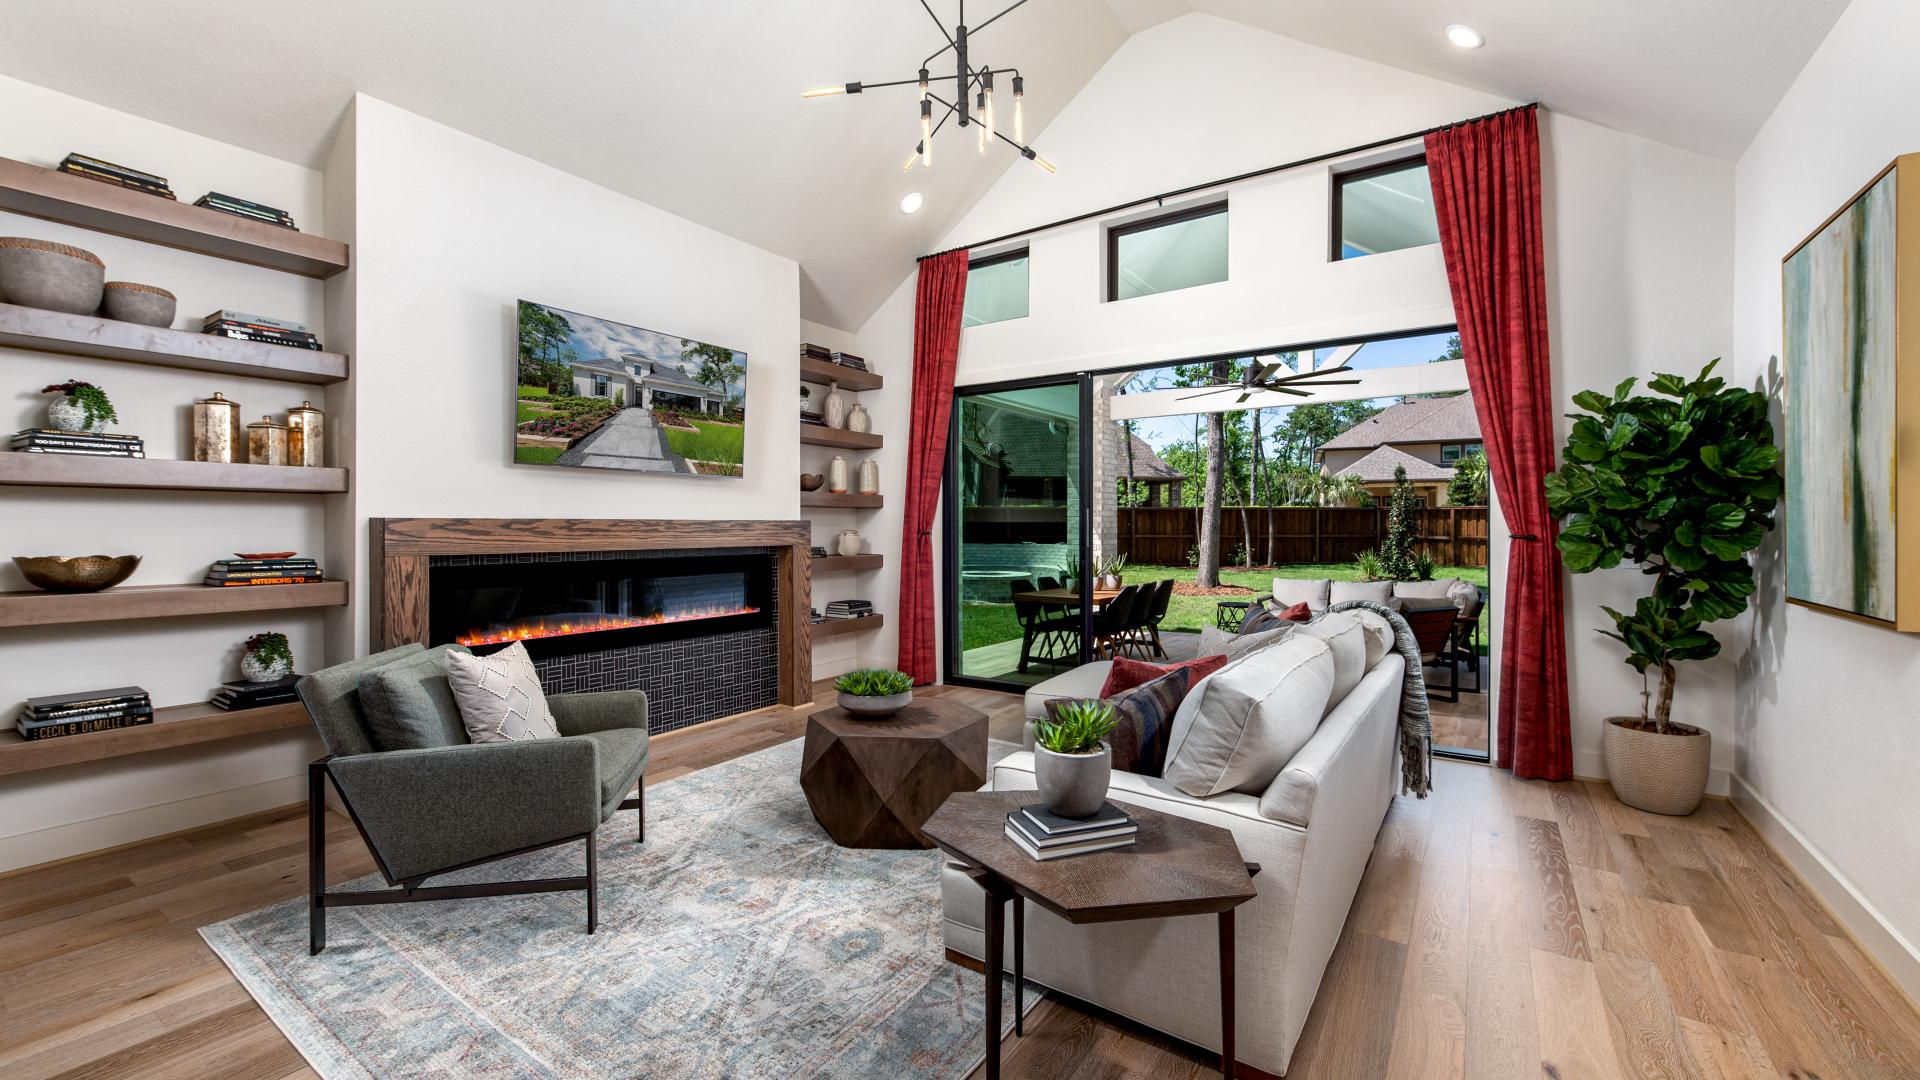 Lavaca's spacious, open concept great room is exceptional for family gatherings